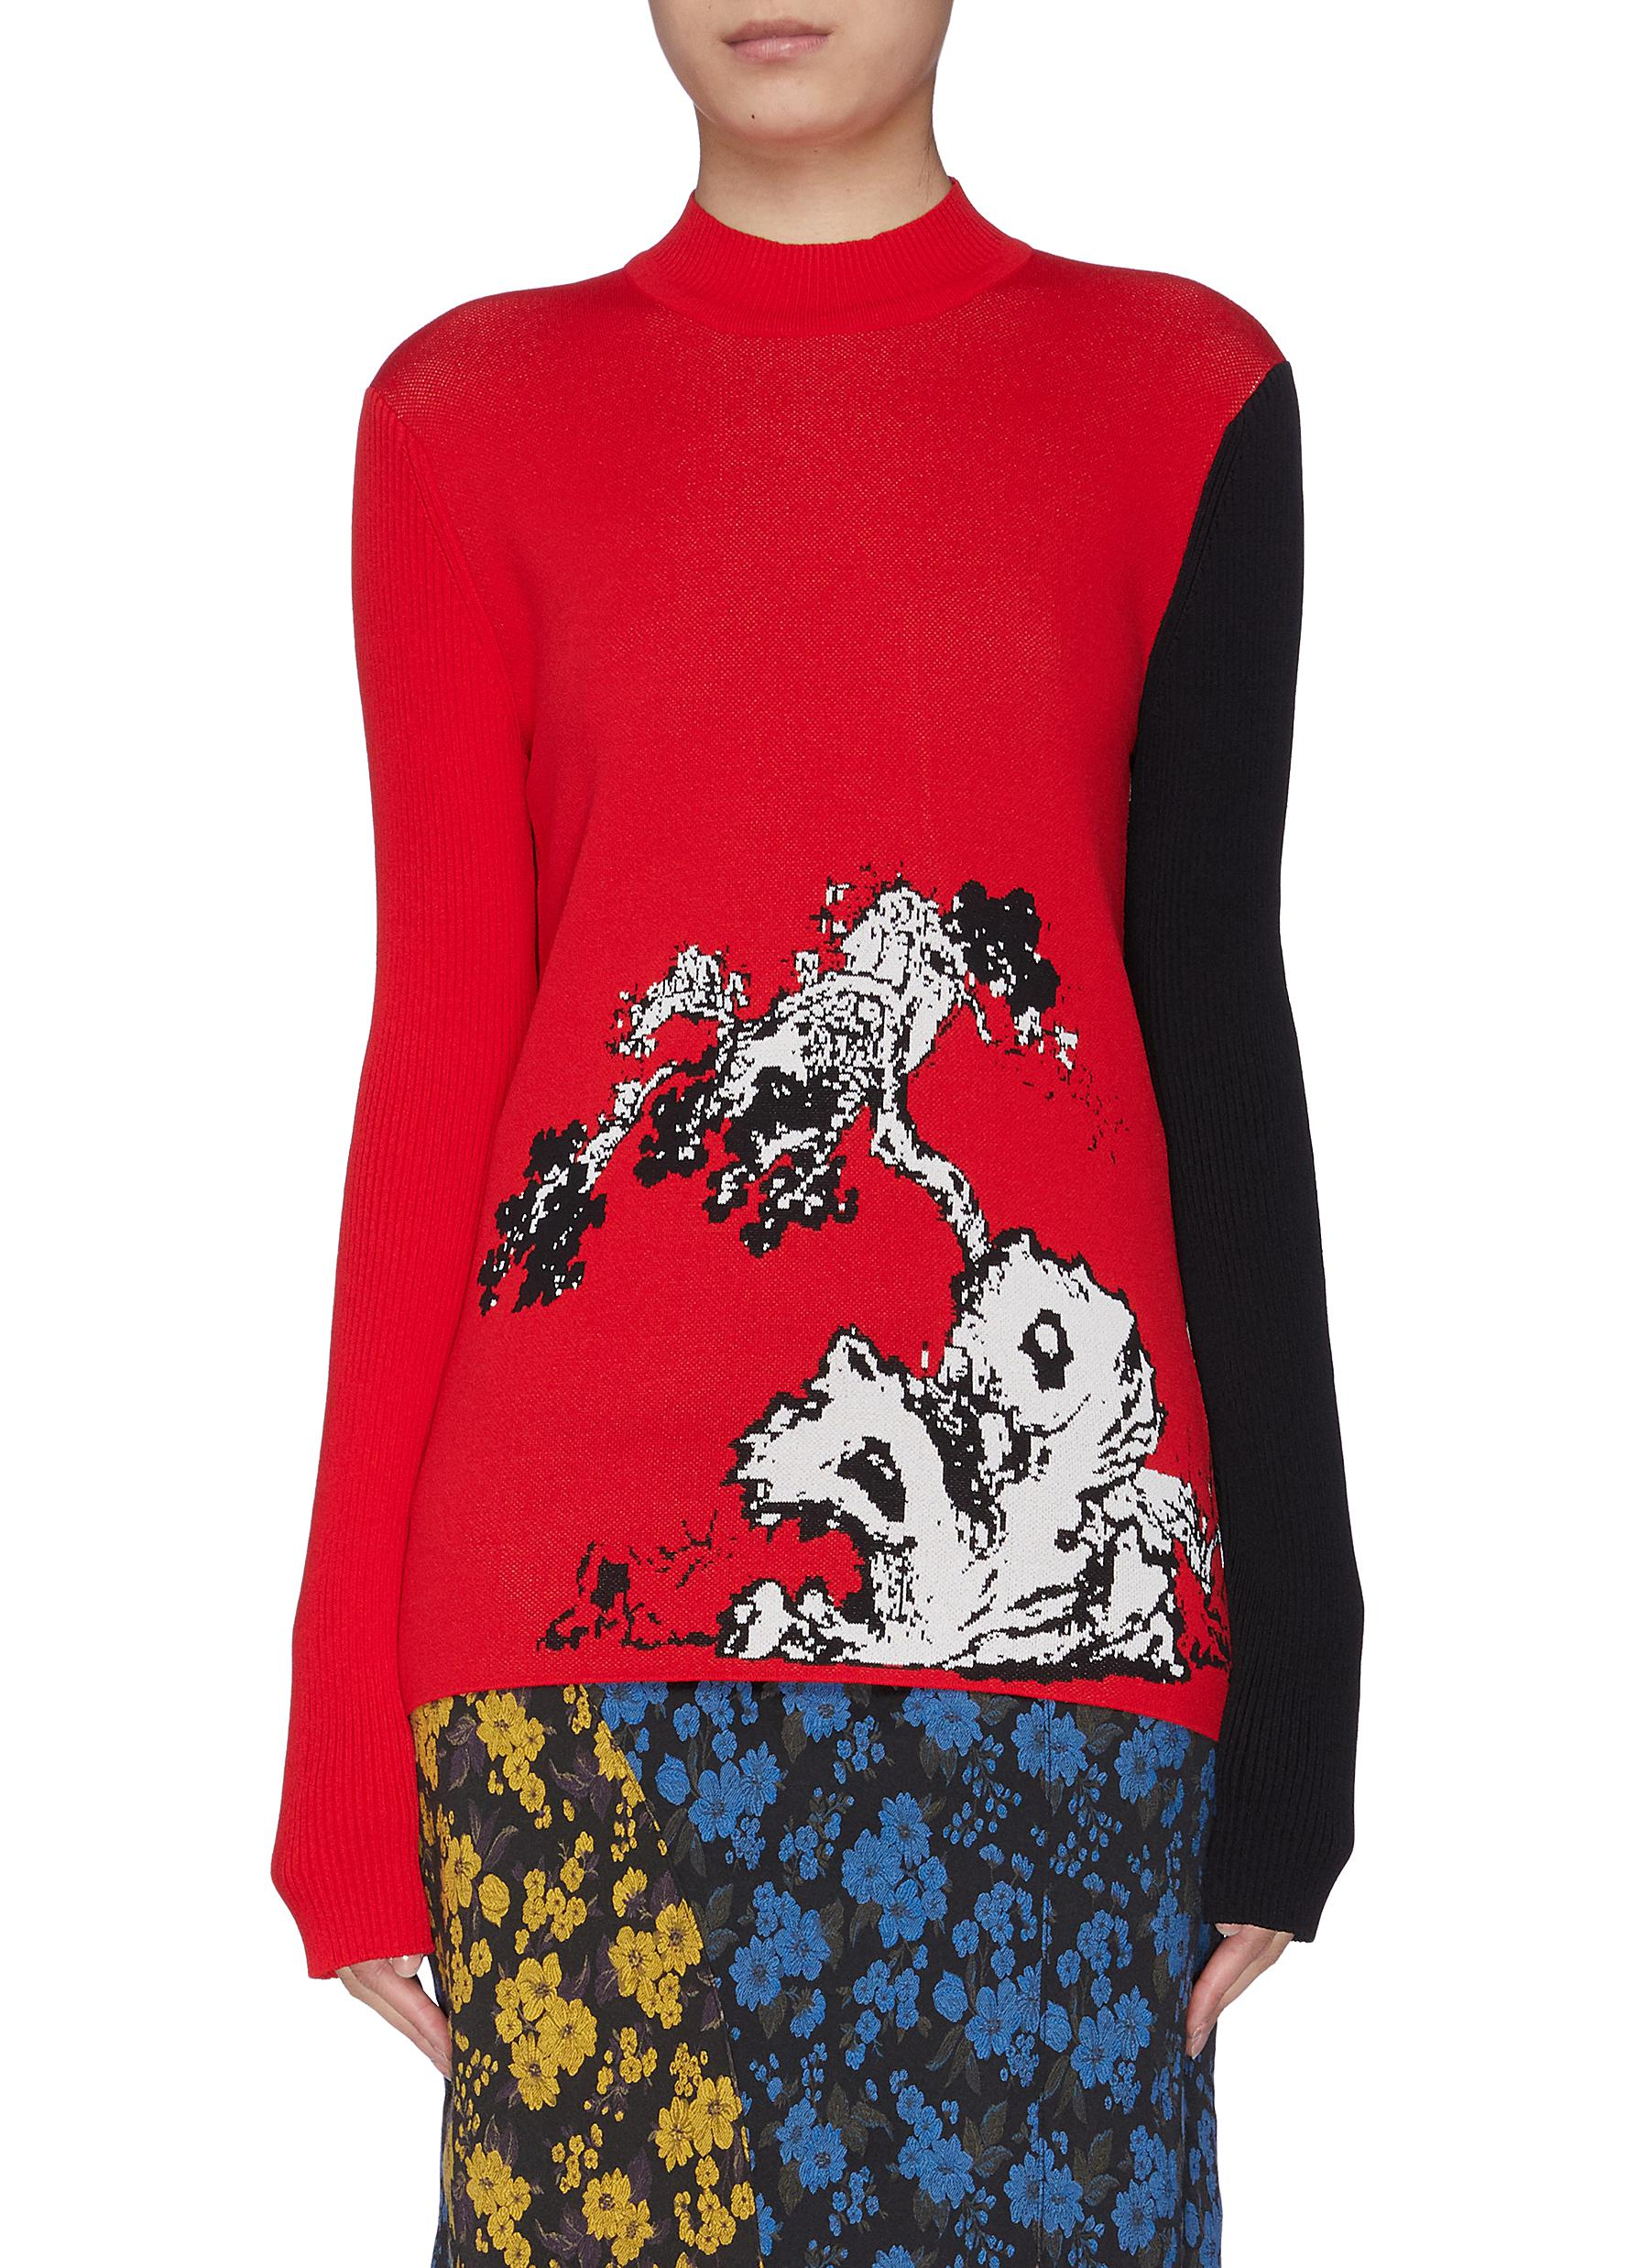 Pinetree contrast sleeve graphic intarsia mock neck sweater by Snow Xue Gao